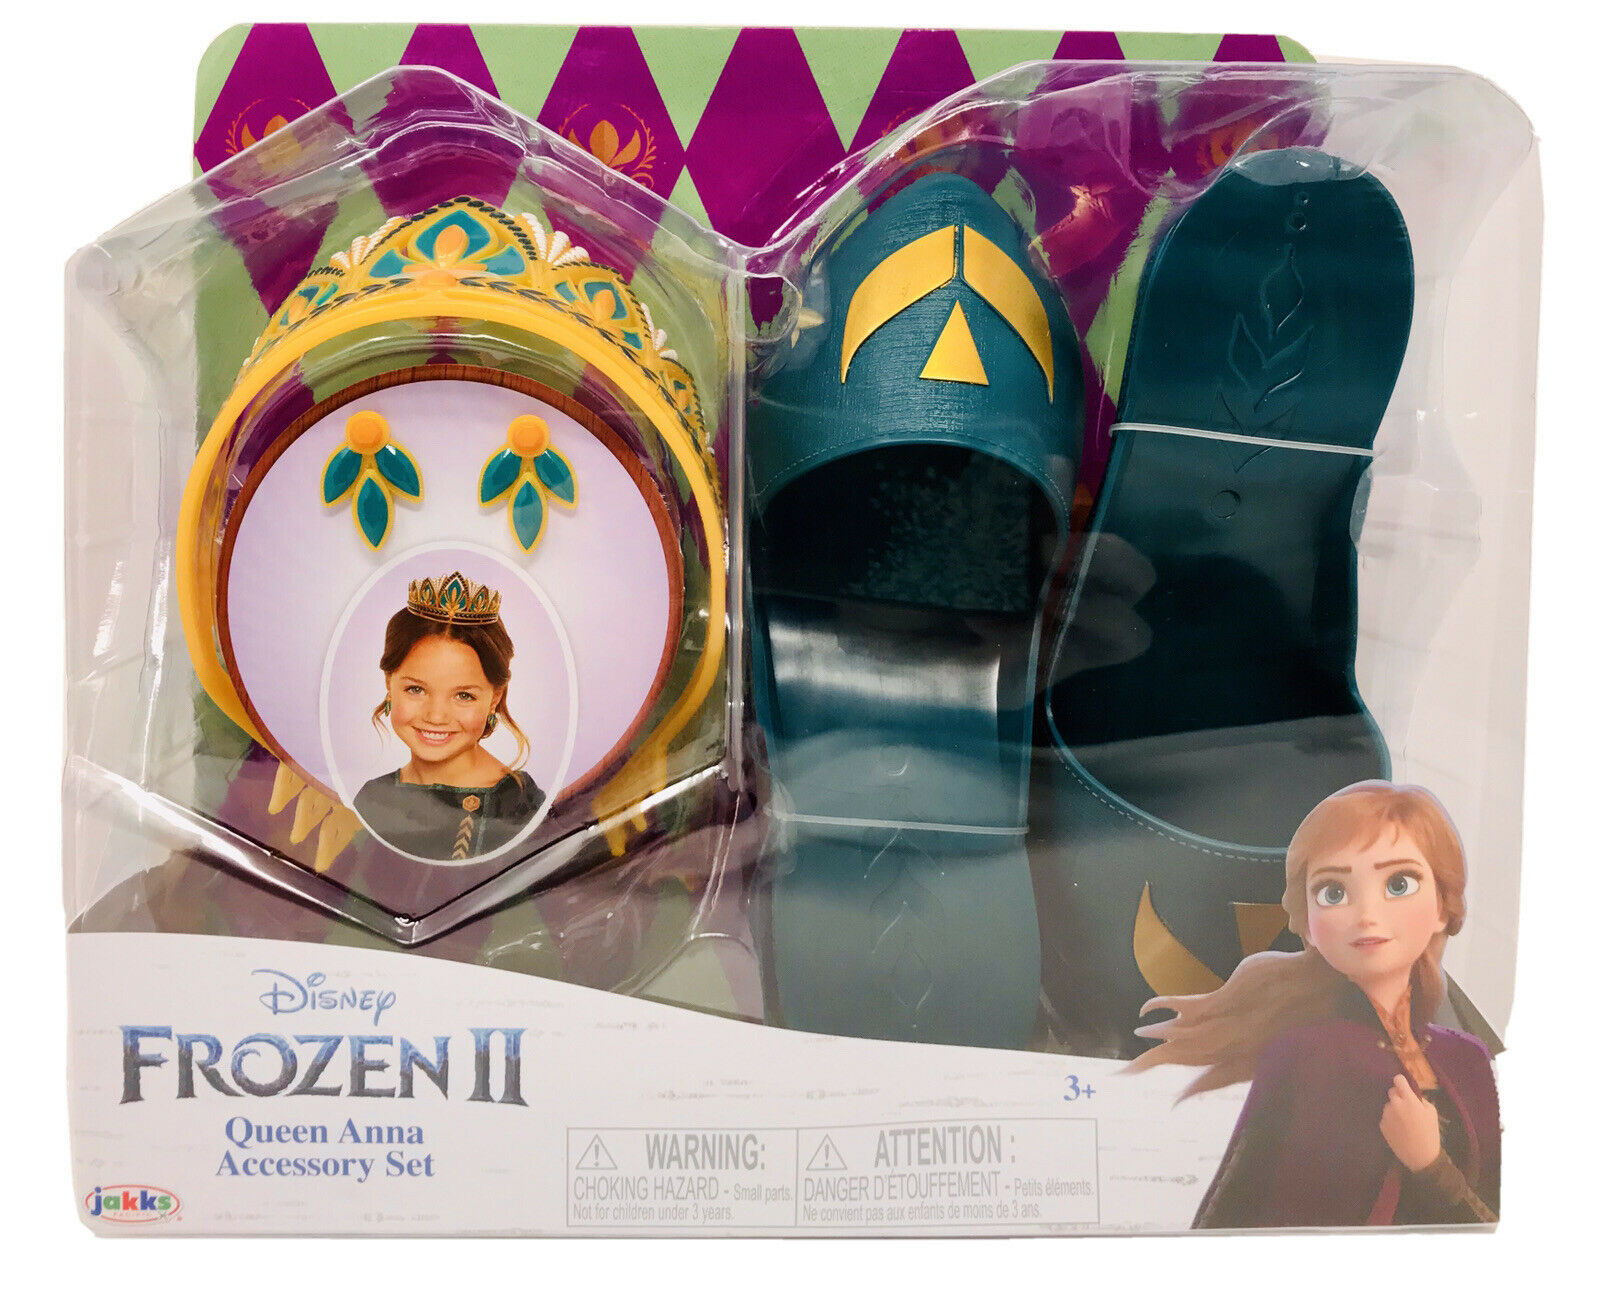 Disney Frozen 2 Queen Anna Accessory Costume Set With Tiara, Earrings, Shoes NEW - $24.99